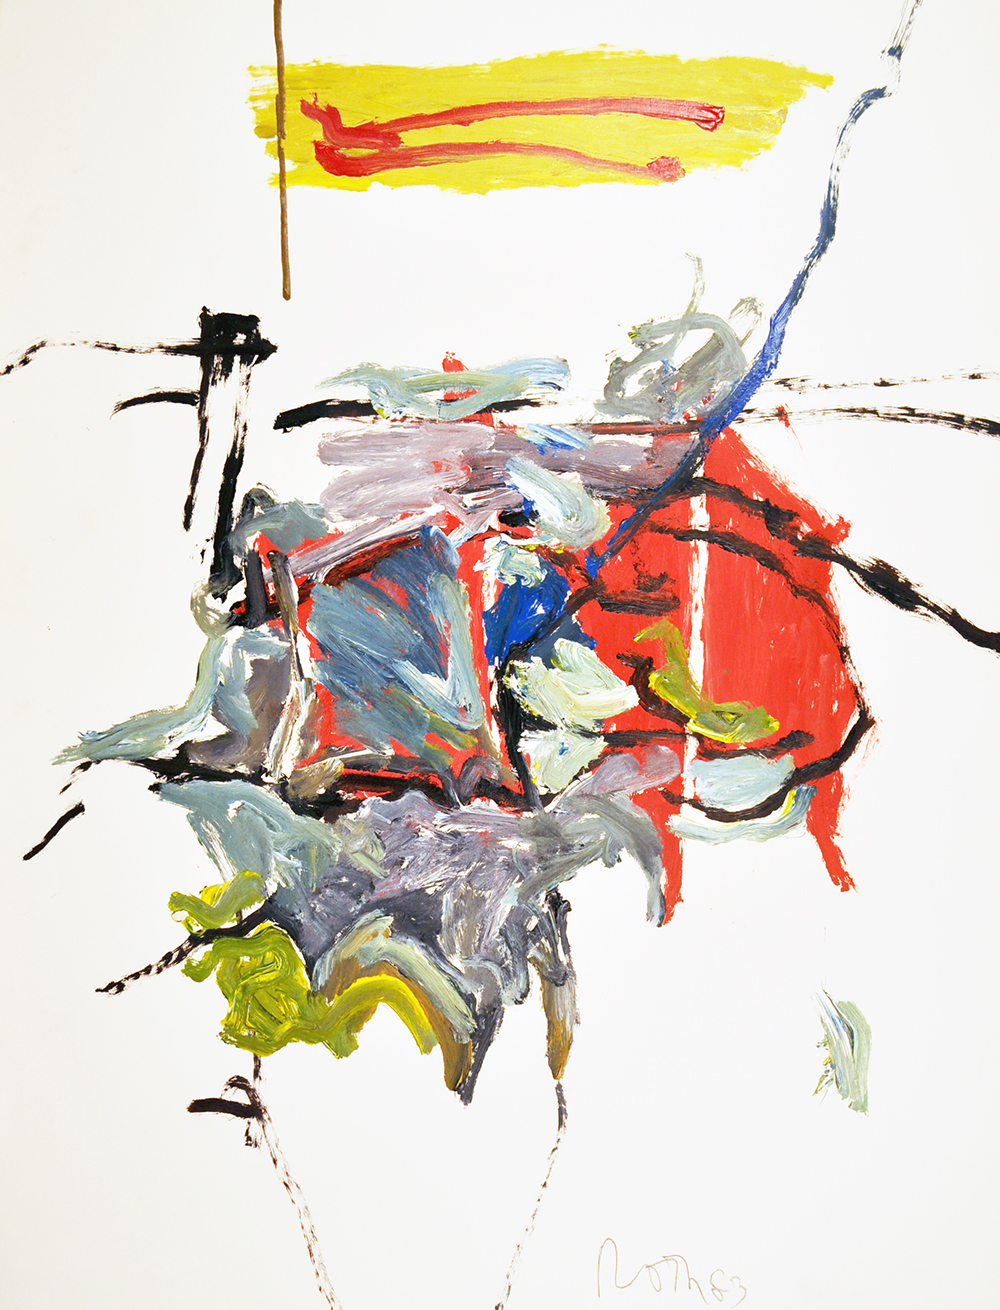 #495 Untitled,   Acrylic on paper, 1983, 50 x 38 1/2 inches